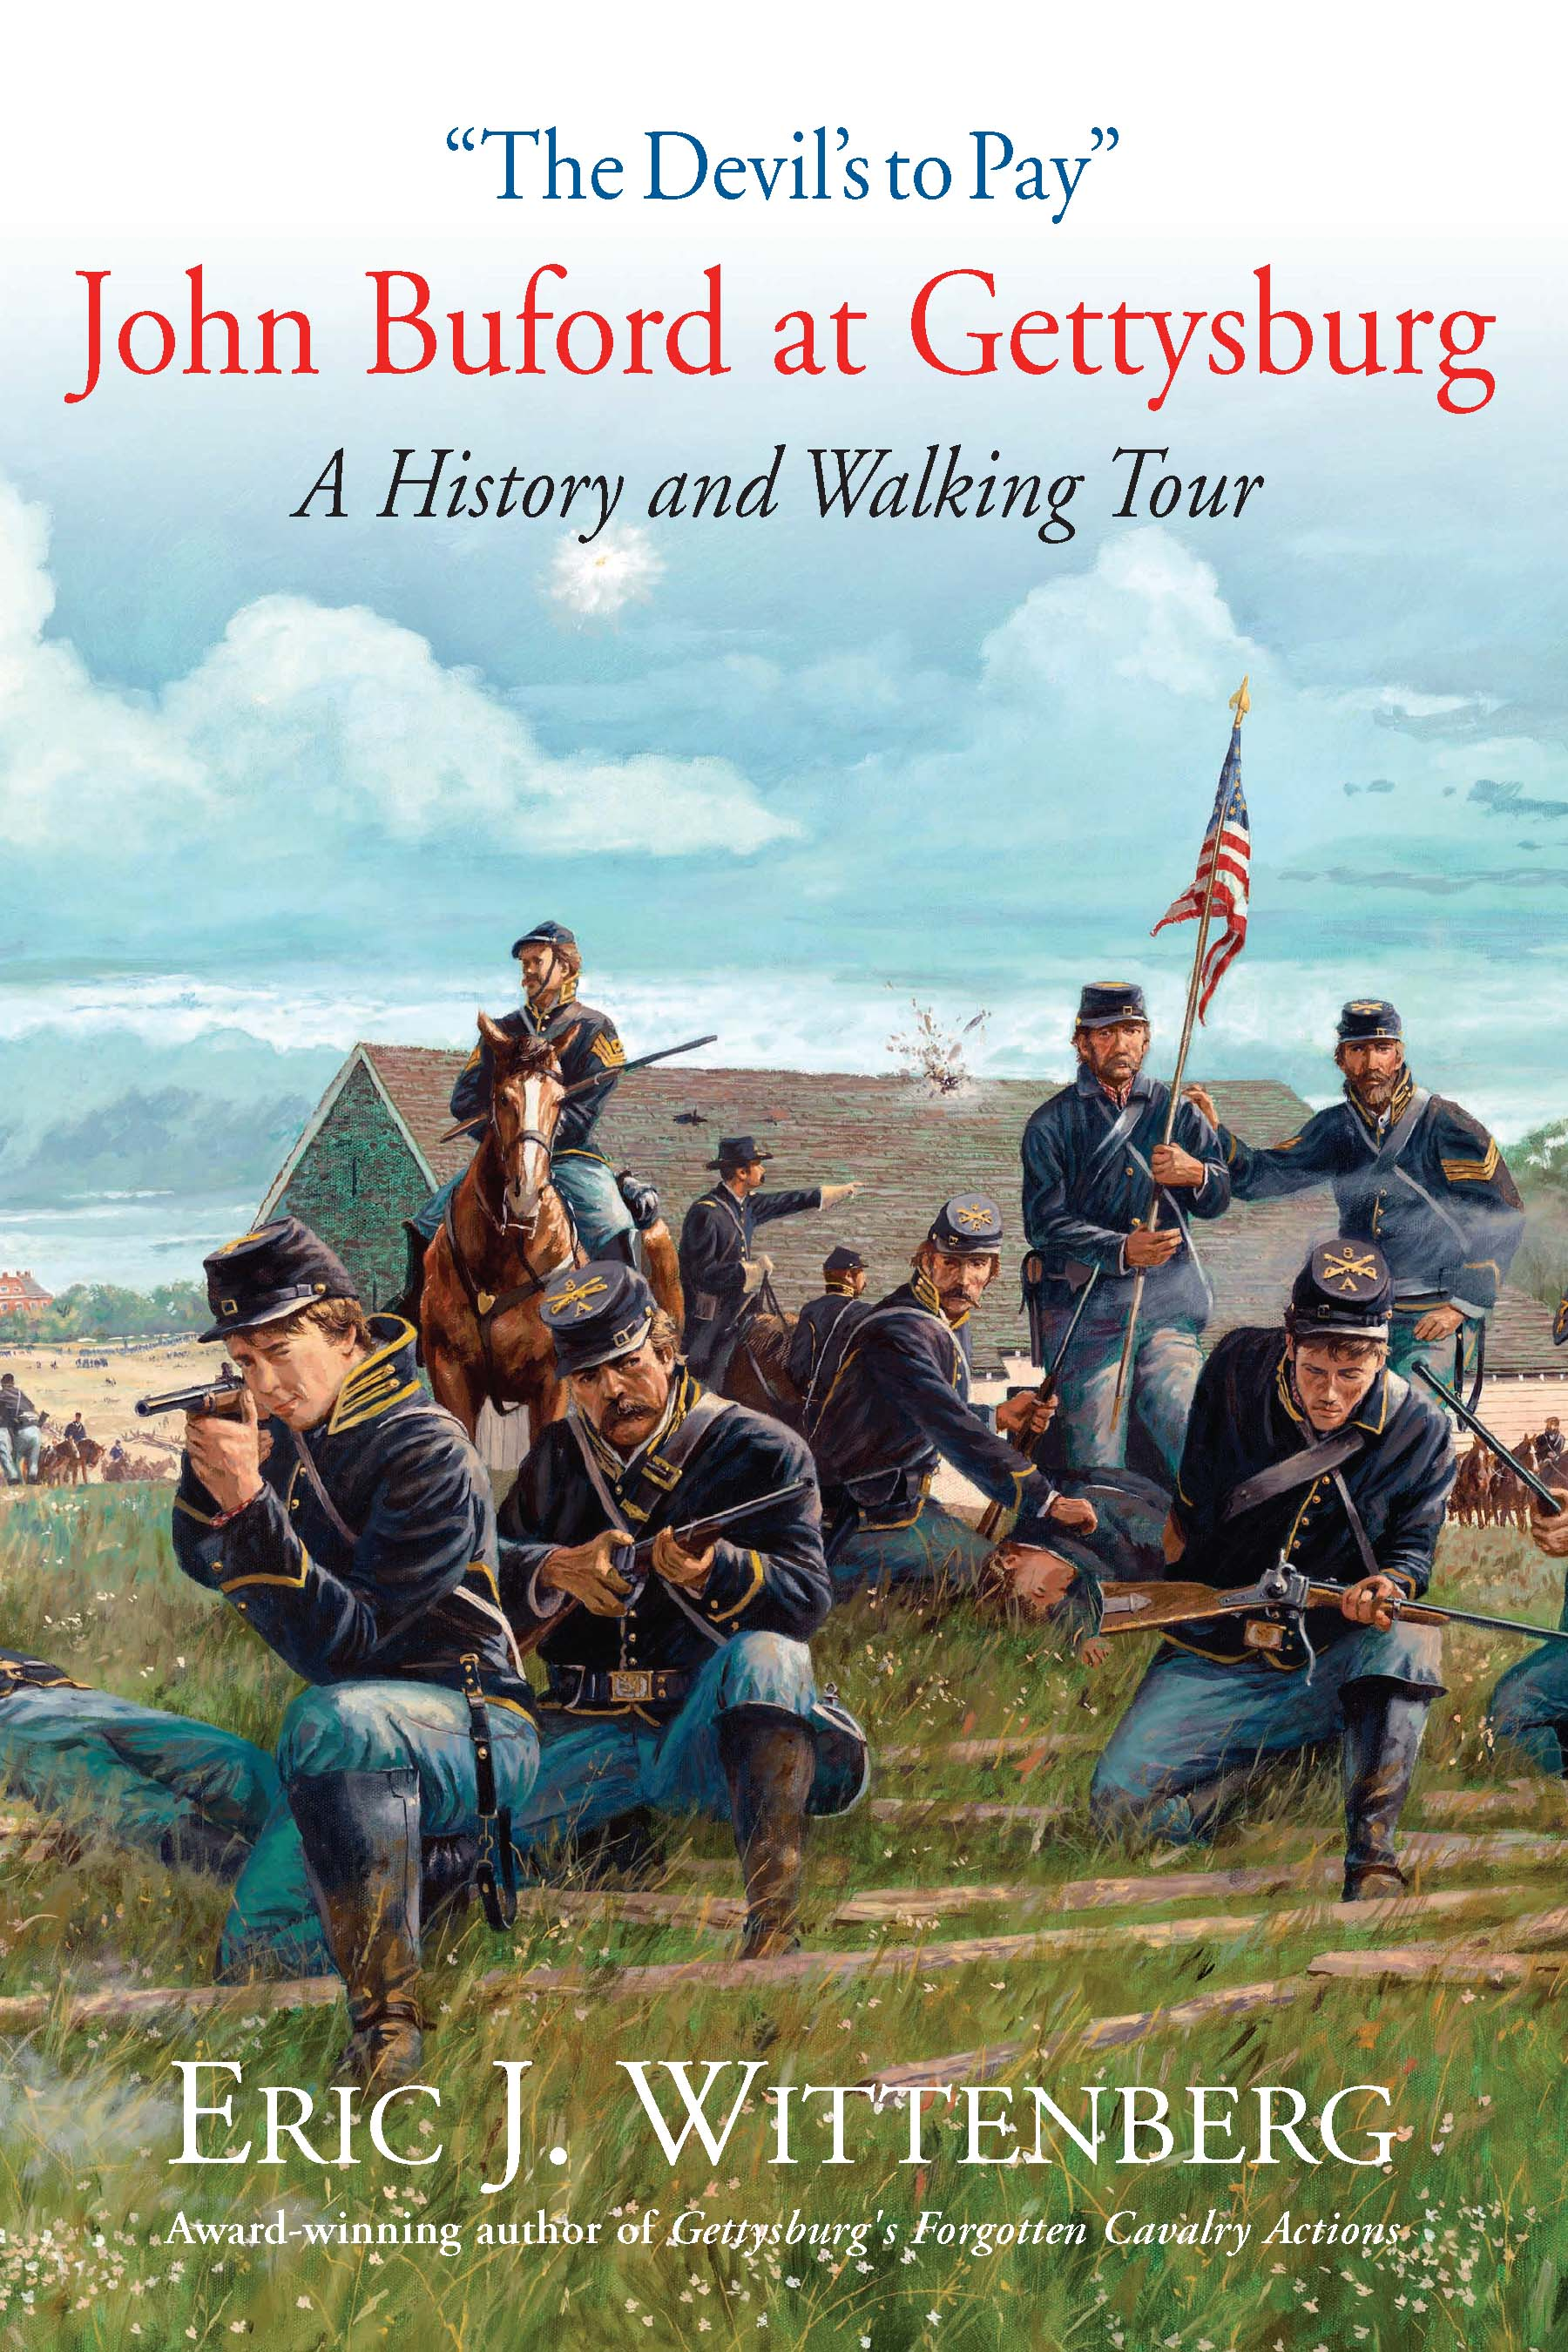 The Devil's to Pay: John Buford at Gettysburg. a History and Walking Tour